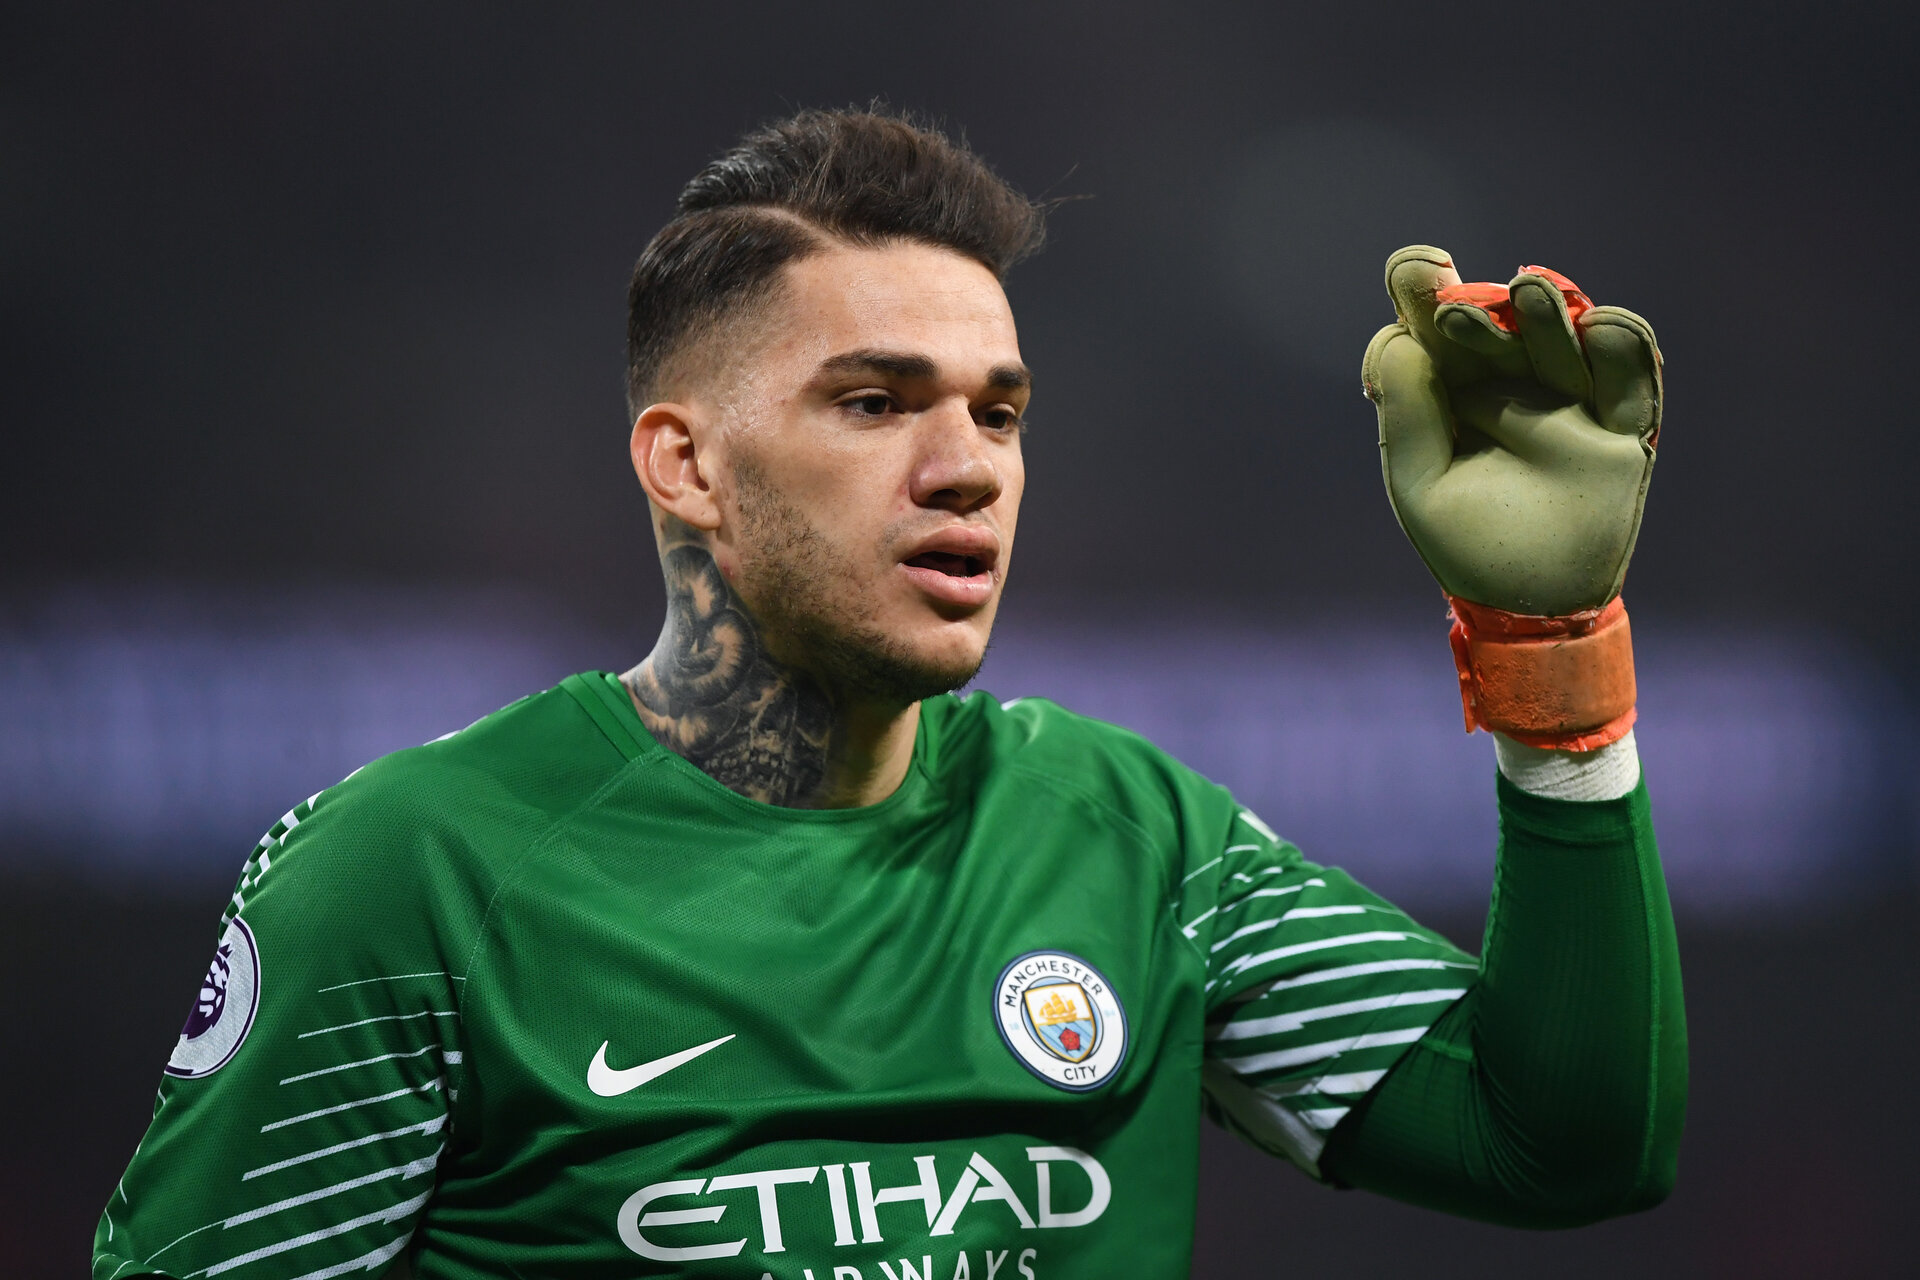 LONDON, ENGLAND - APRIL 14: Ederson of Manchester City looks on during the Premier League match between Tottenham Hotspur and Manchester City at Wembley Stadium on April 14, 2018 in London, England.  (Photo by Shaun Botterill/Getty Images)